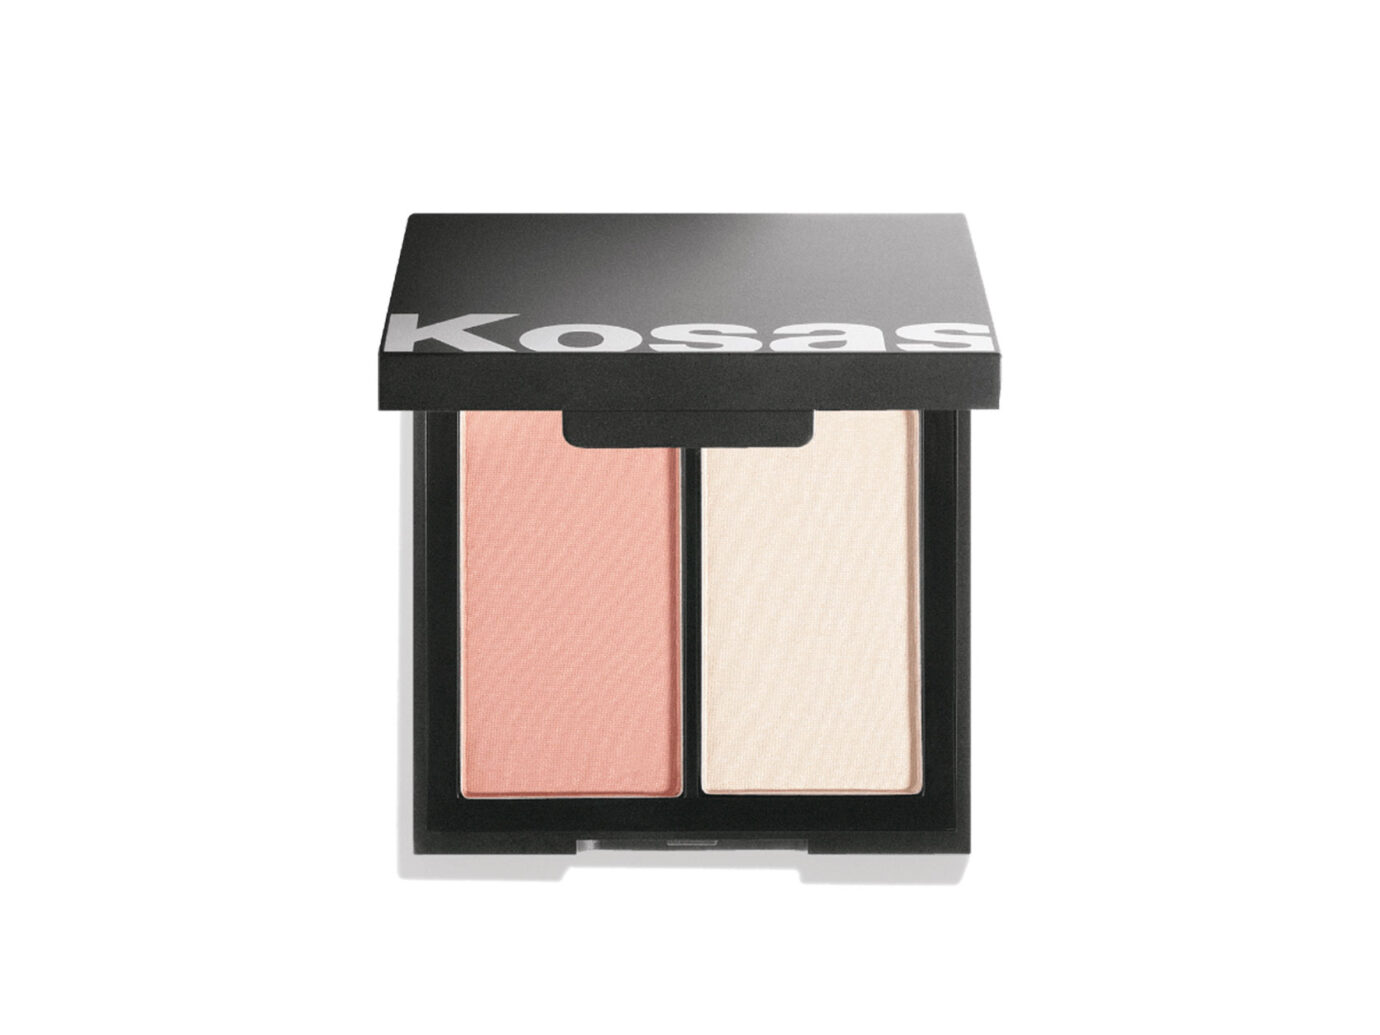 Kosas Papaya 1972 Blush and Highlighter Duo